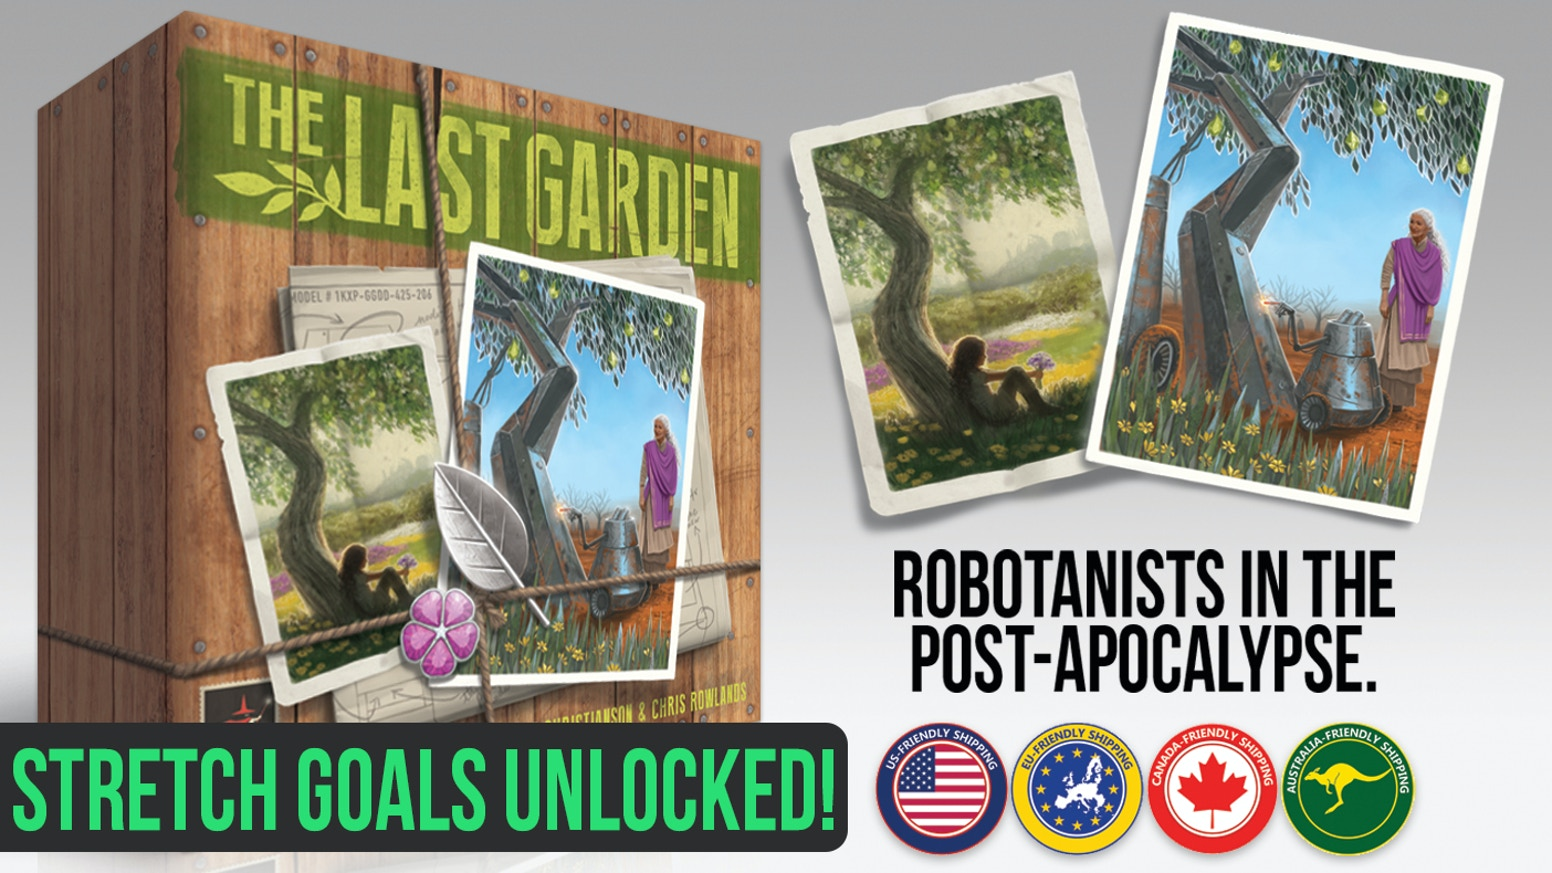 A board game where players control groups of Robotanists making a beautiful artificial garden in the wastelands of the post-apocalypse.